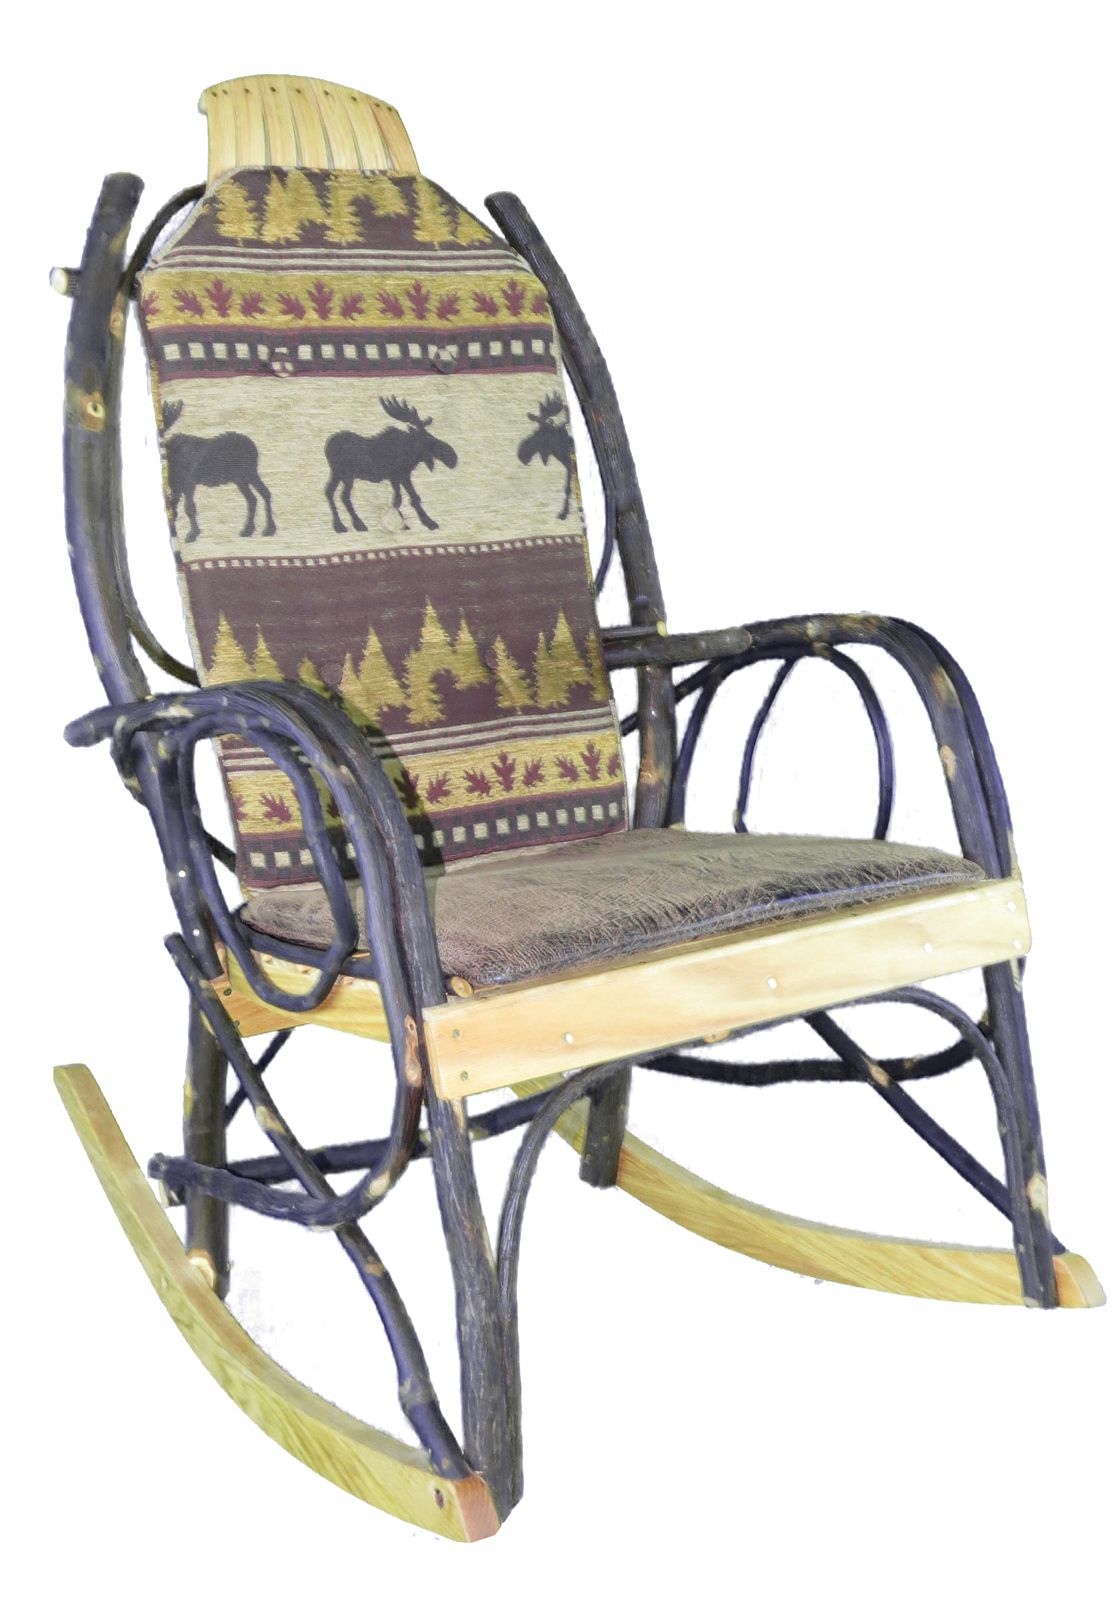 Amish Made Rocking Chair Cushions Universal Covers Canada Bentwood Rocker Cushion Set Brown Moose Fabric Home Decor